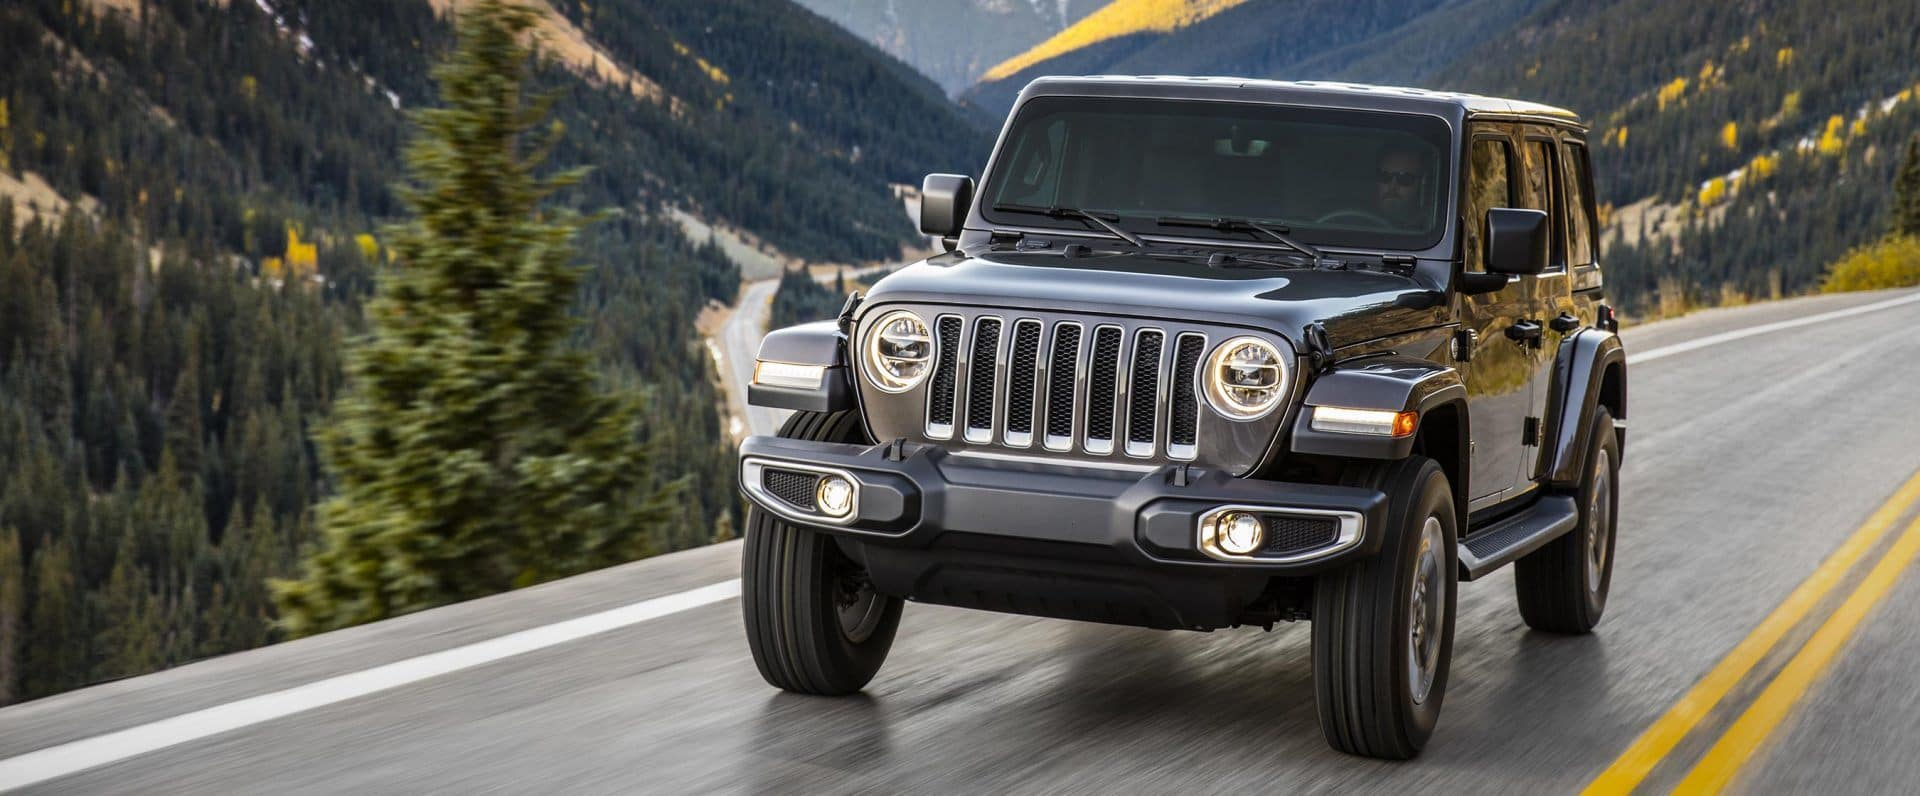 Used Jeeps Near Me >> Jeep Dealer Near Me Lansing Il New Car Specials Deals